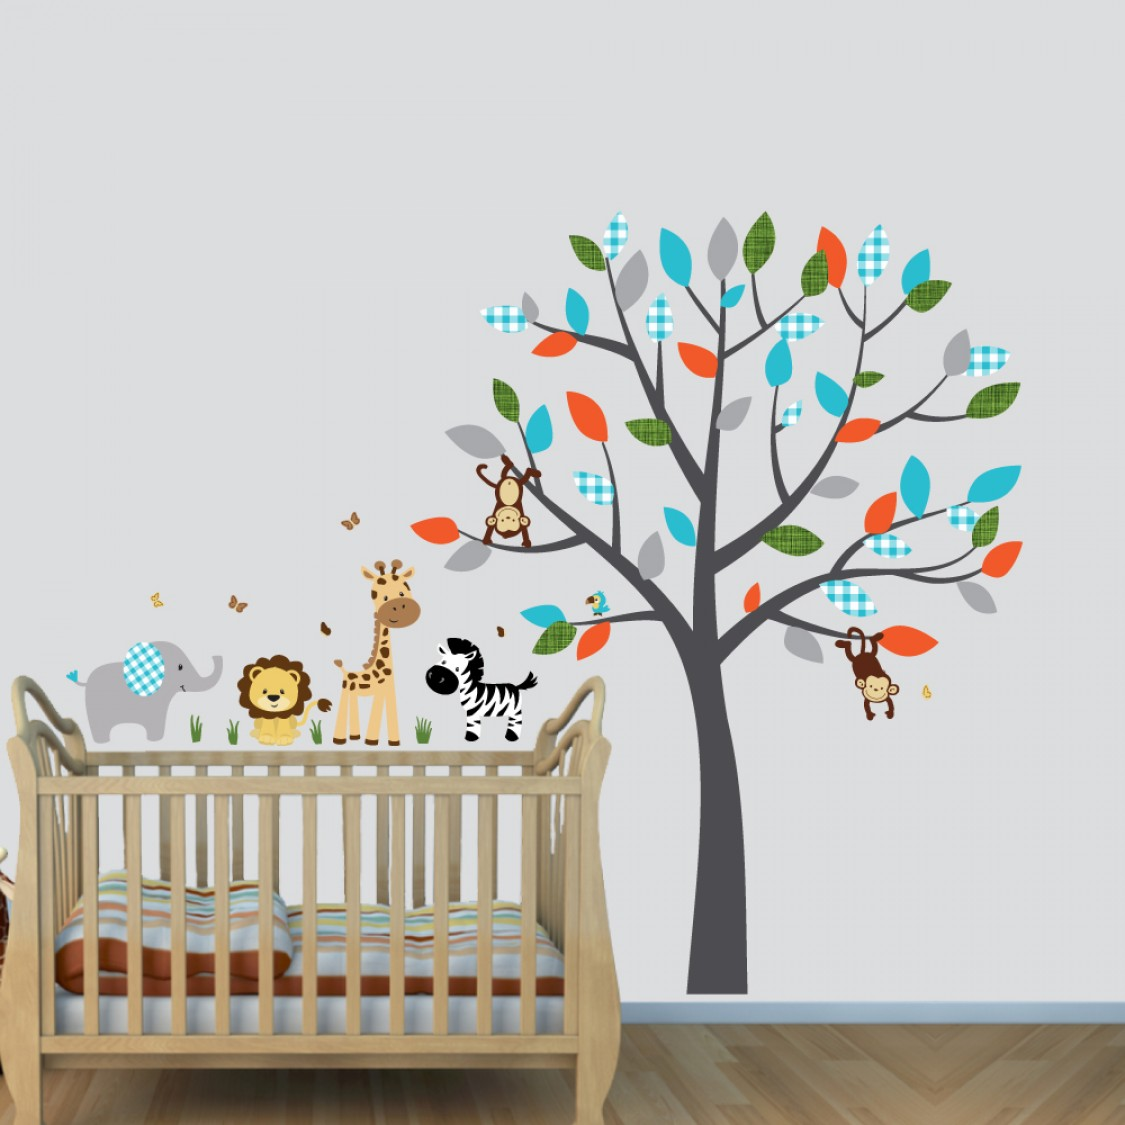 Colorful Wall Decals Jungle With Elephant Decals For Kids